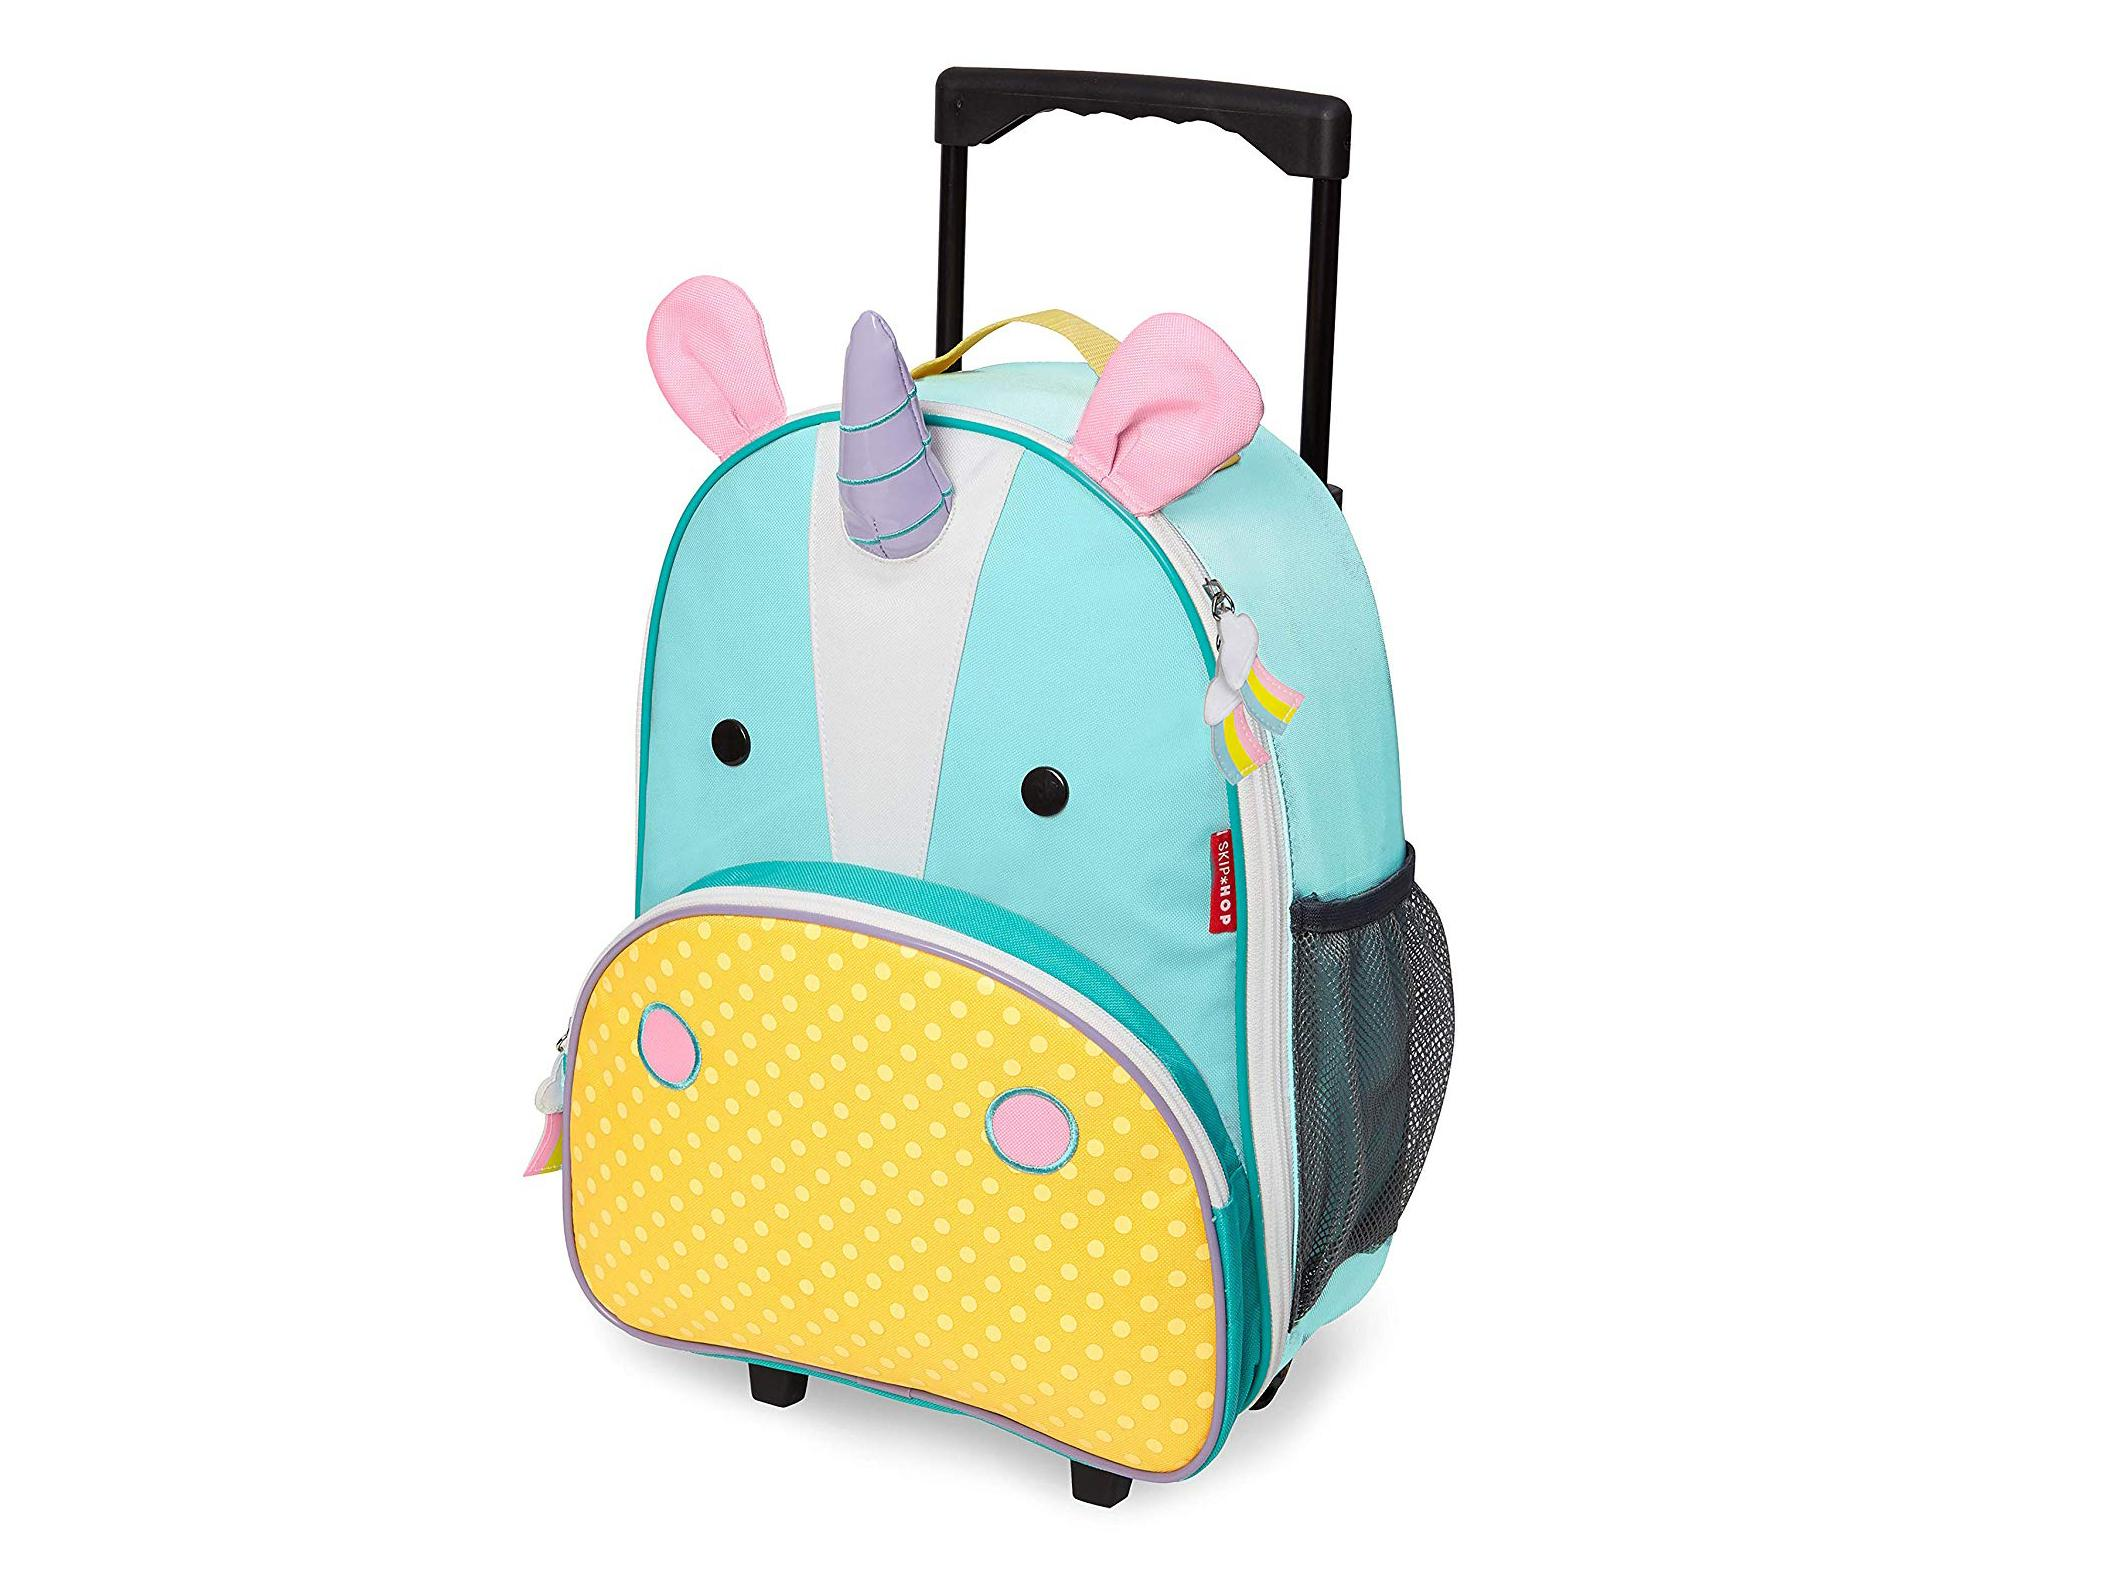 d6f8f48f01d1 Best children's luggage: Suitcases, backpacks and carry-ons that are ...